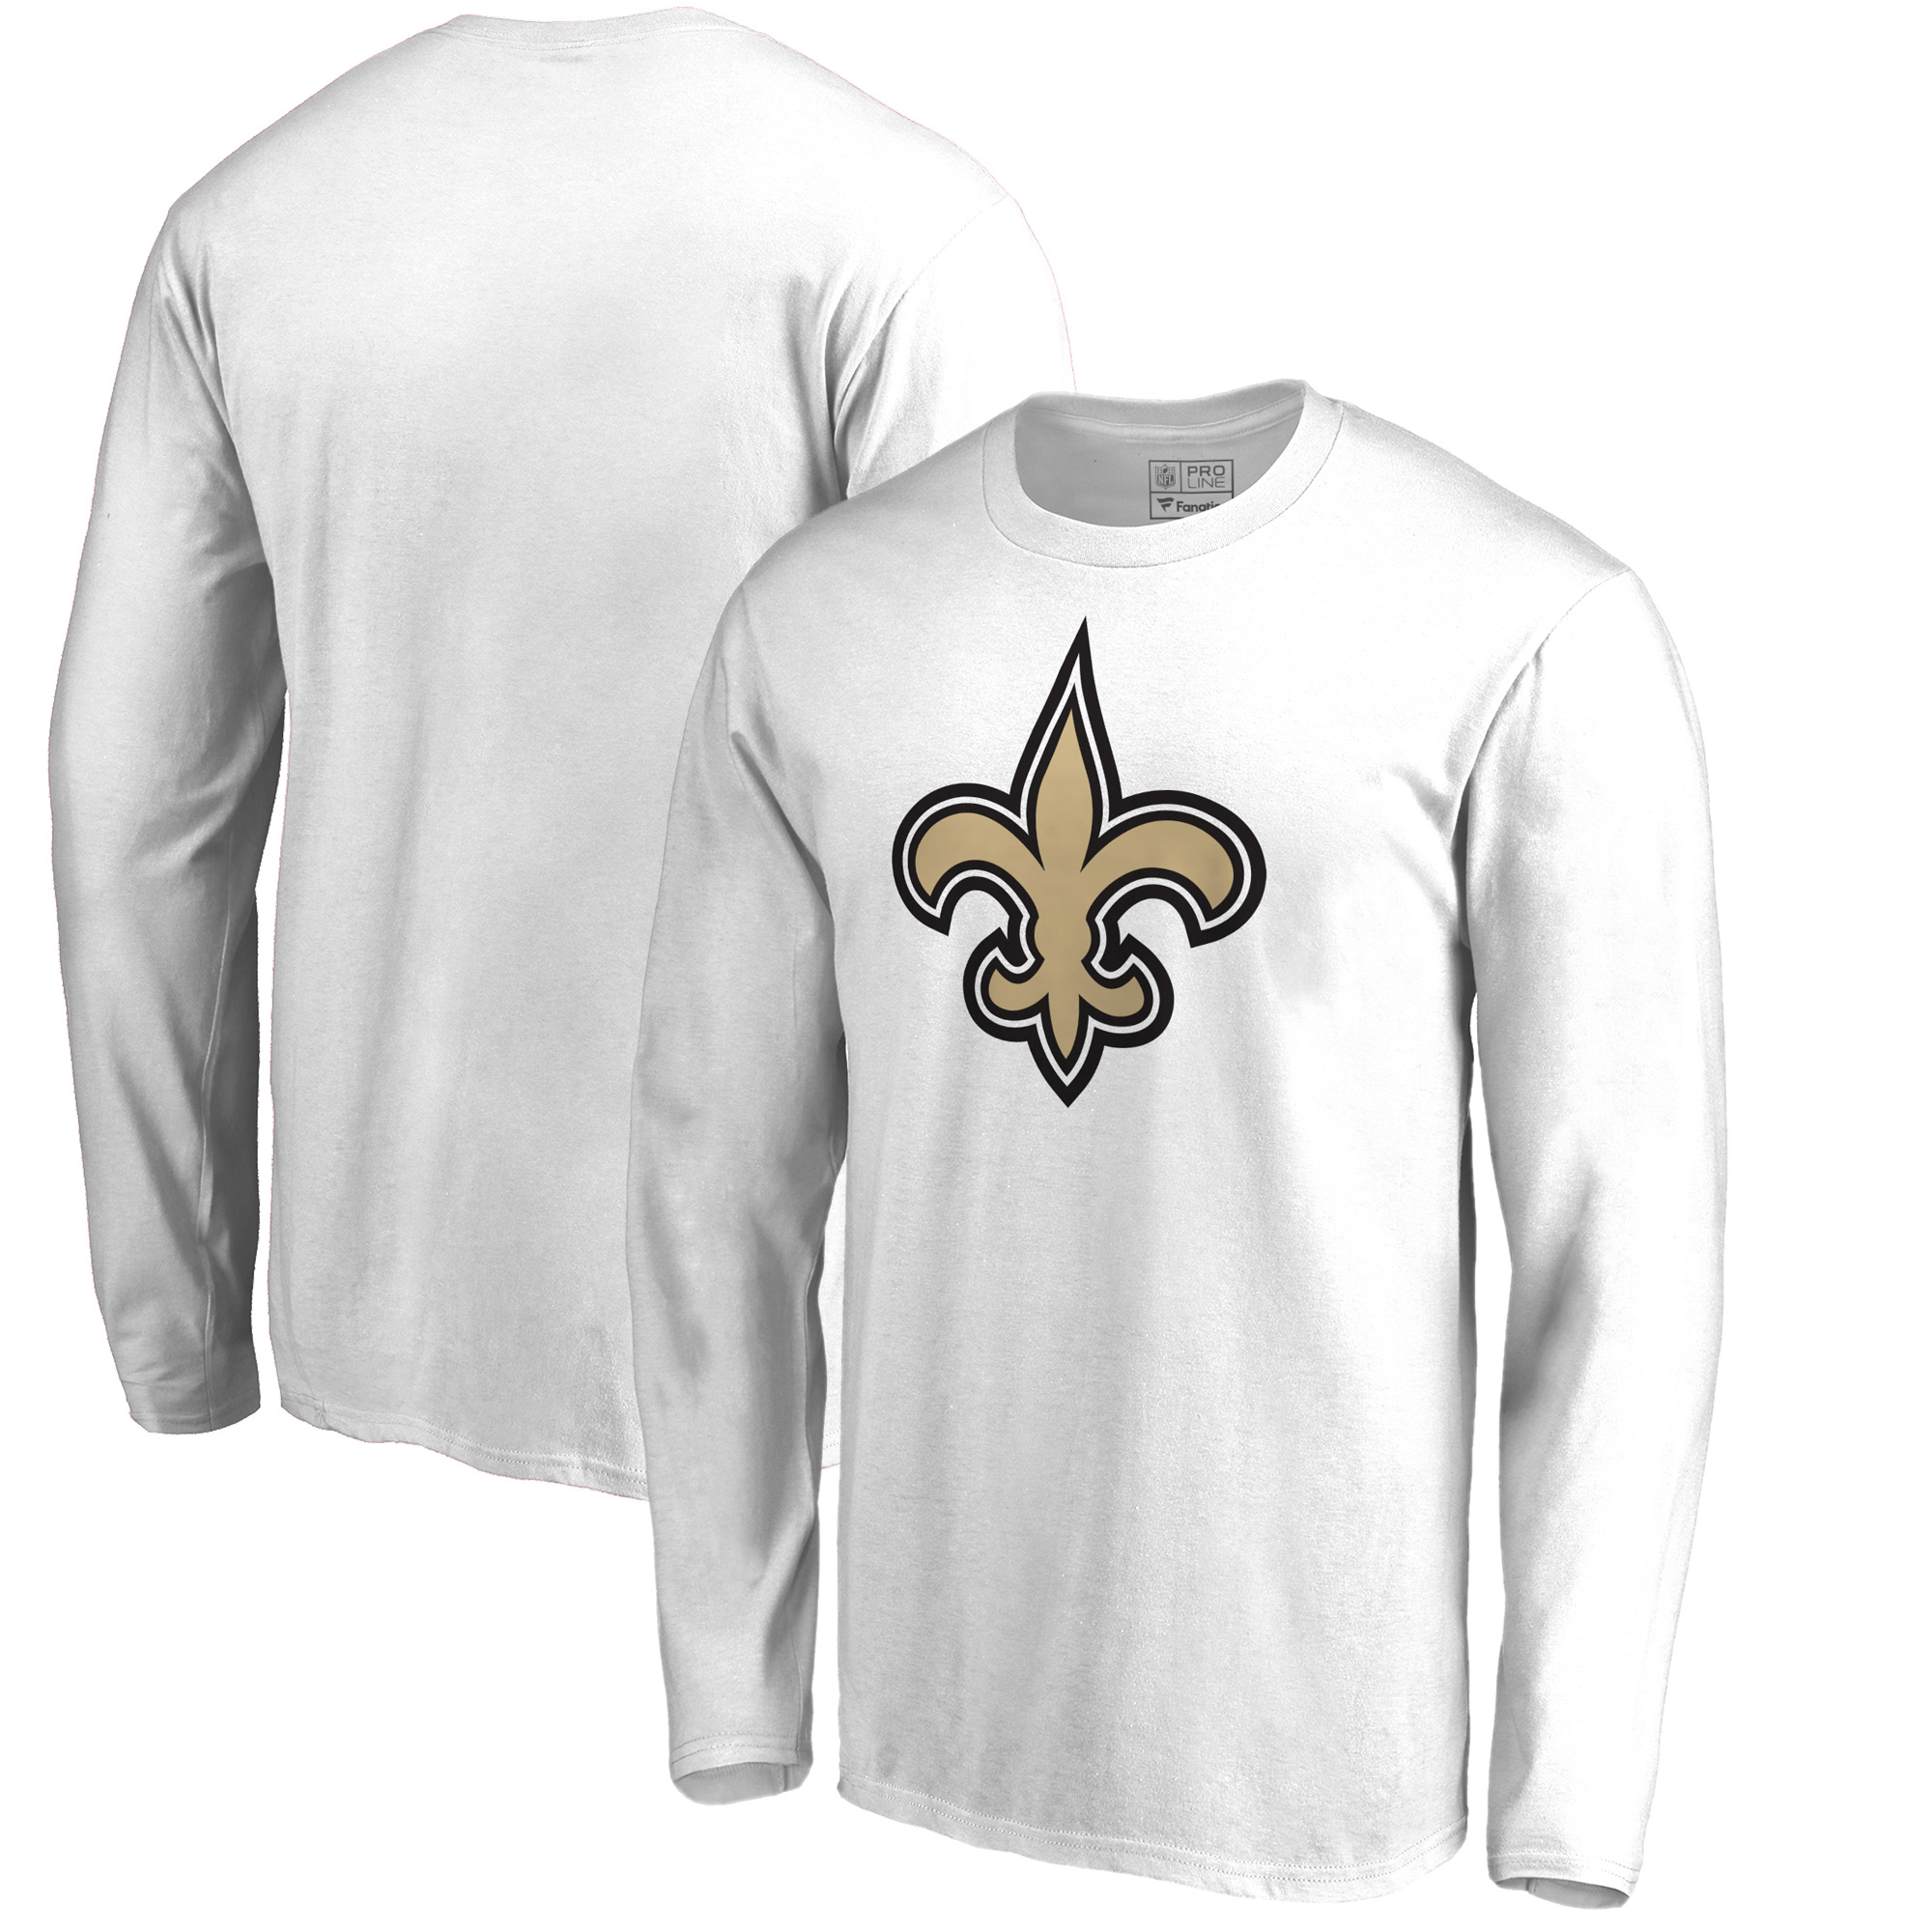 New Orleans Saints NFL Pro Line by Fanatics Branded Team Primary Logo Long Sleeve T-Shirt - White